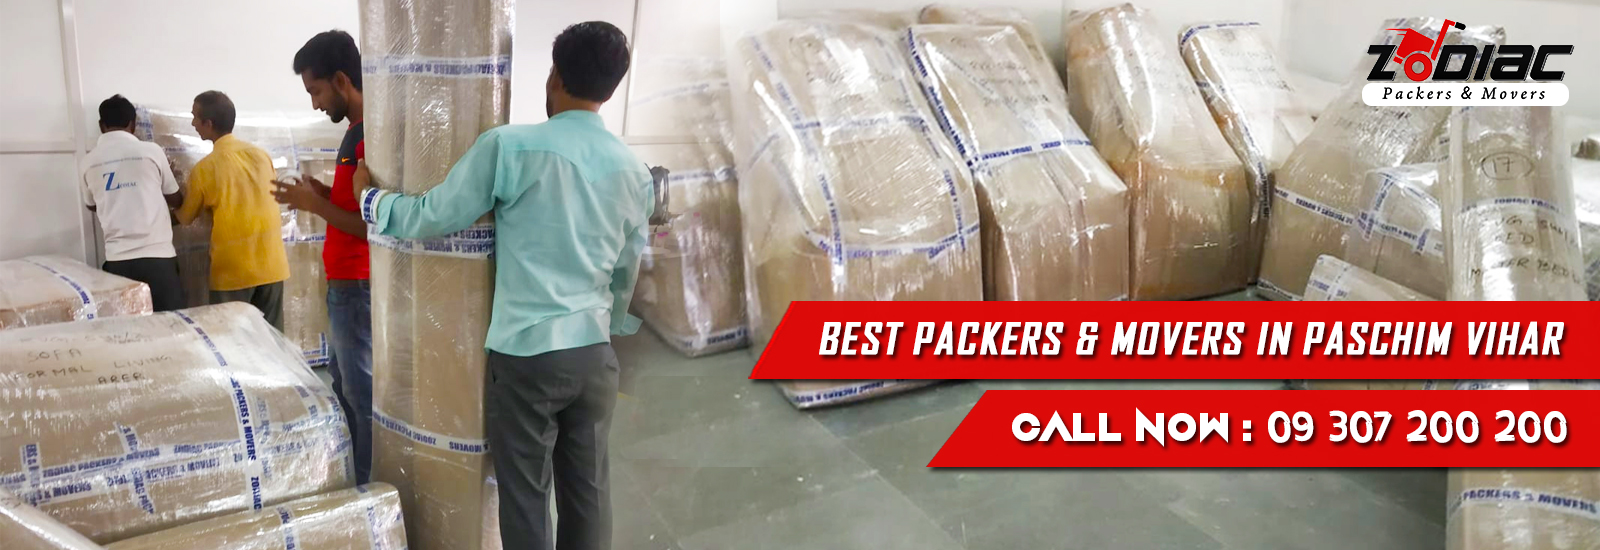 Packers and Movers in Paschim Vihar